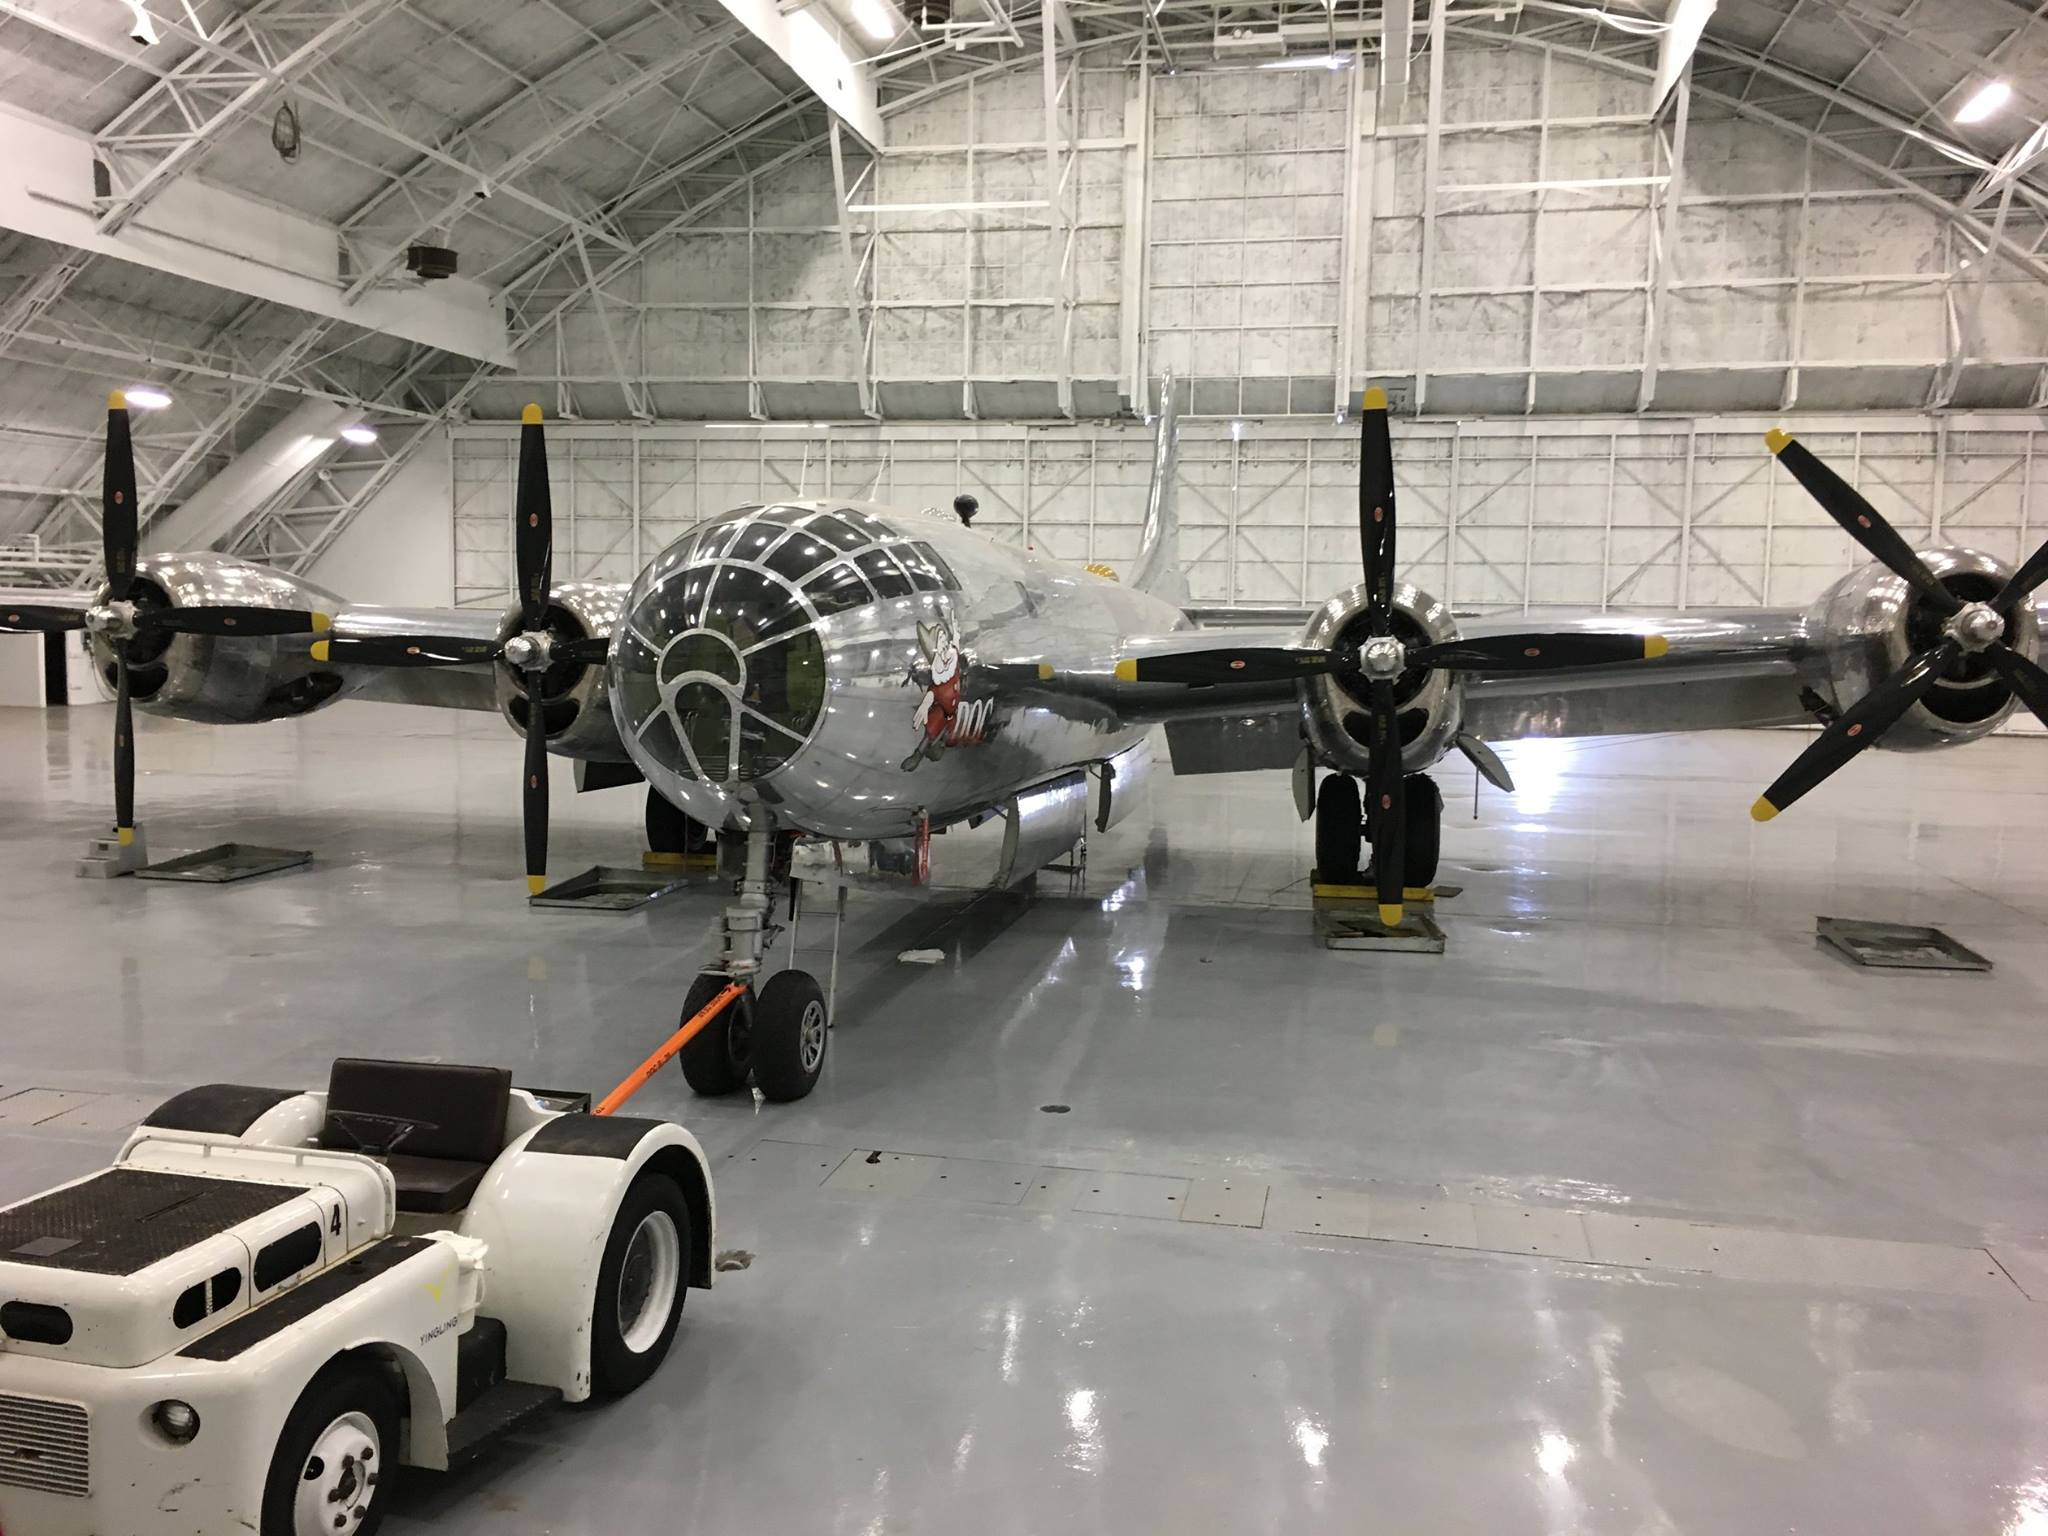 B-29 Doc clears 'phase one' of flight test operations